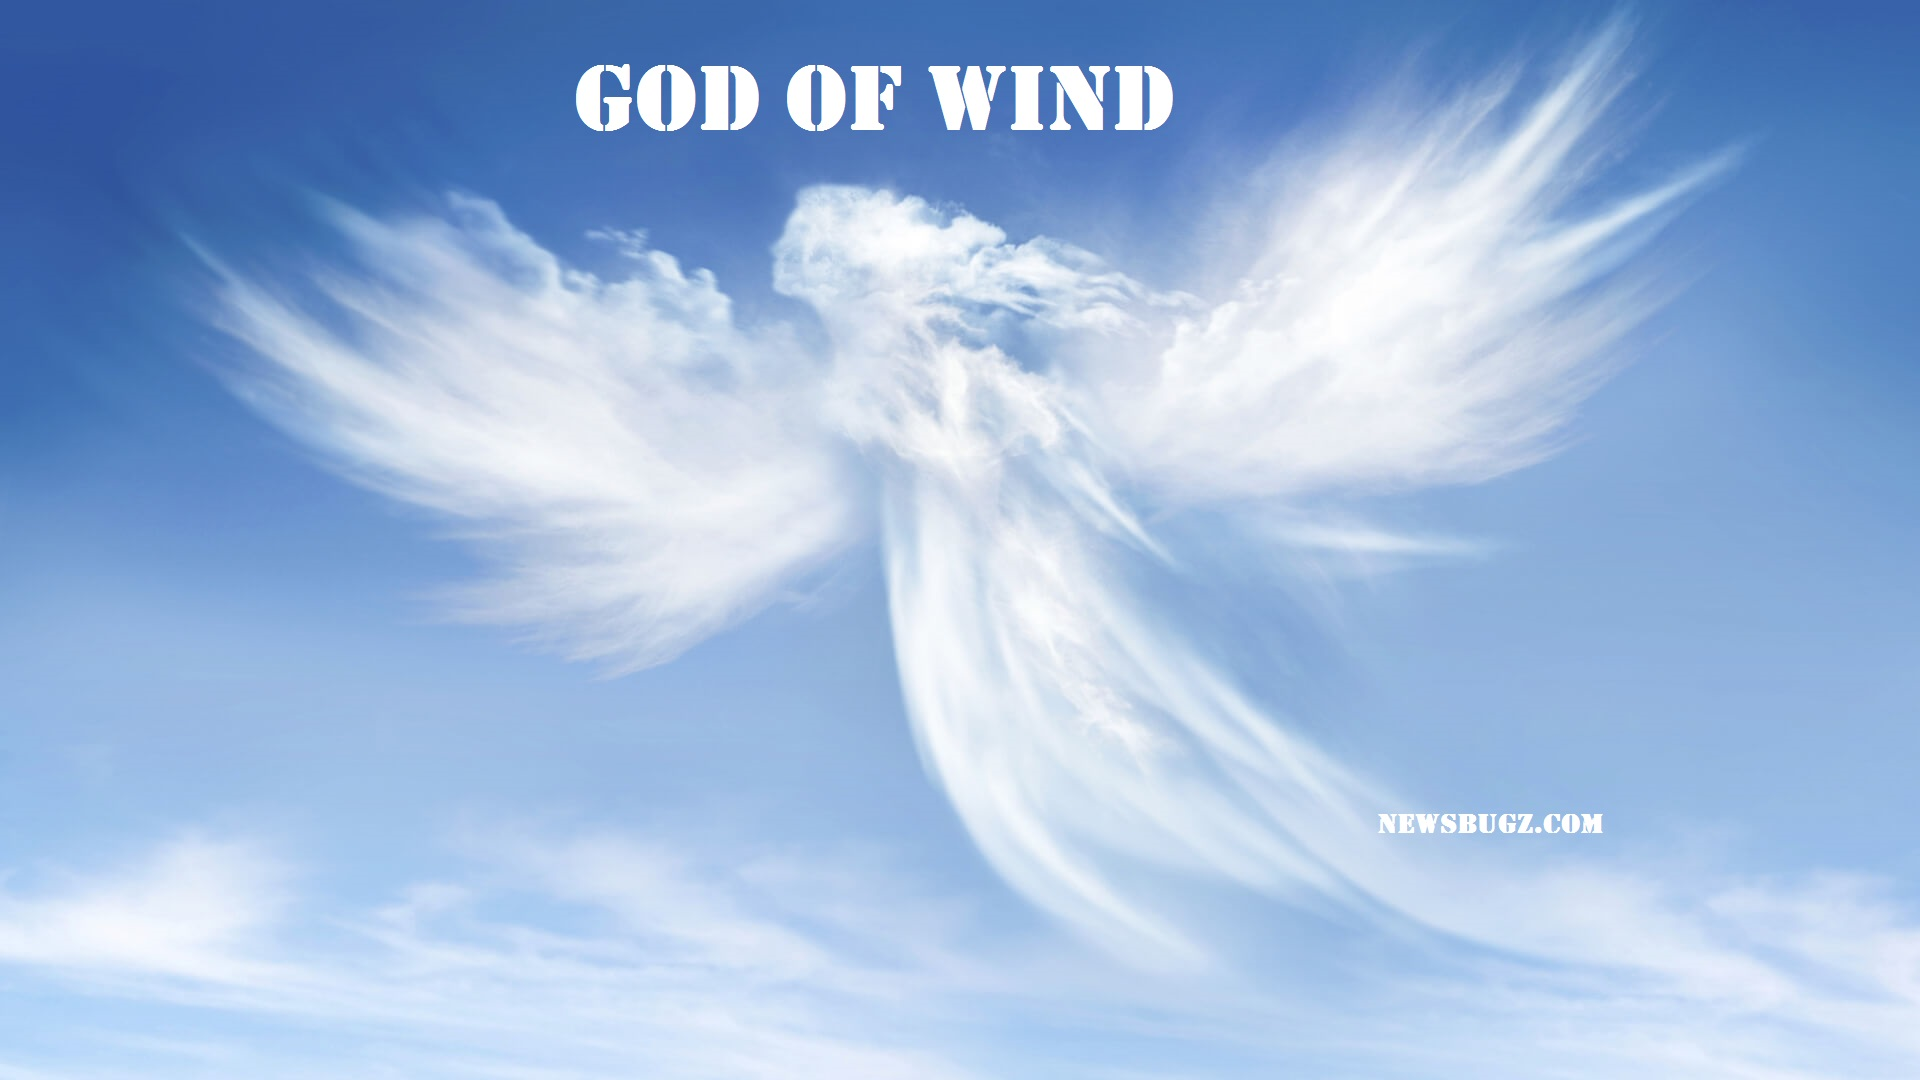 God of Wind